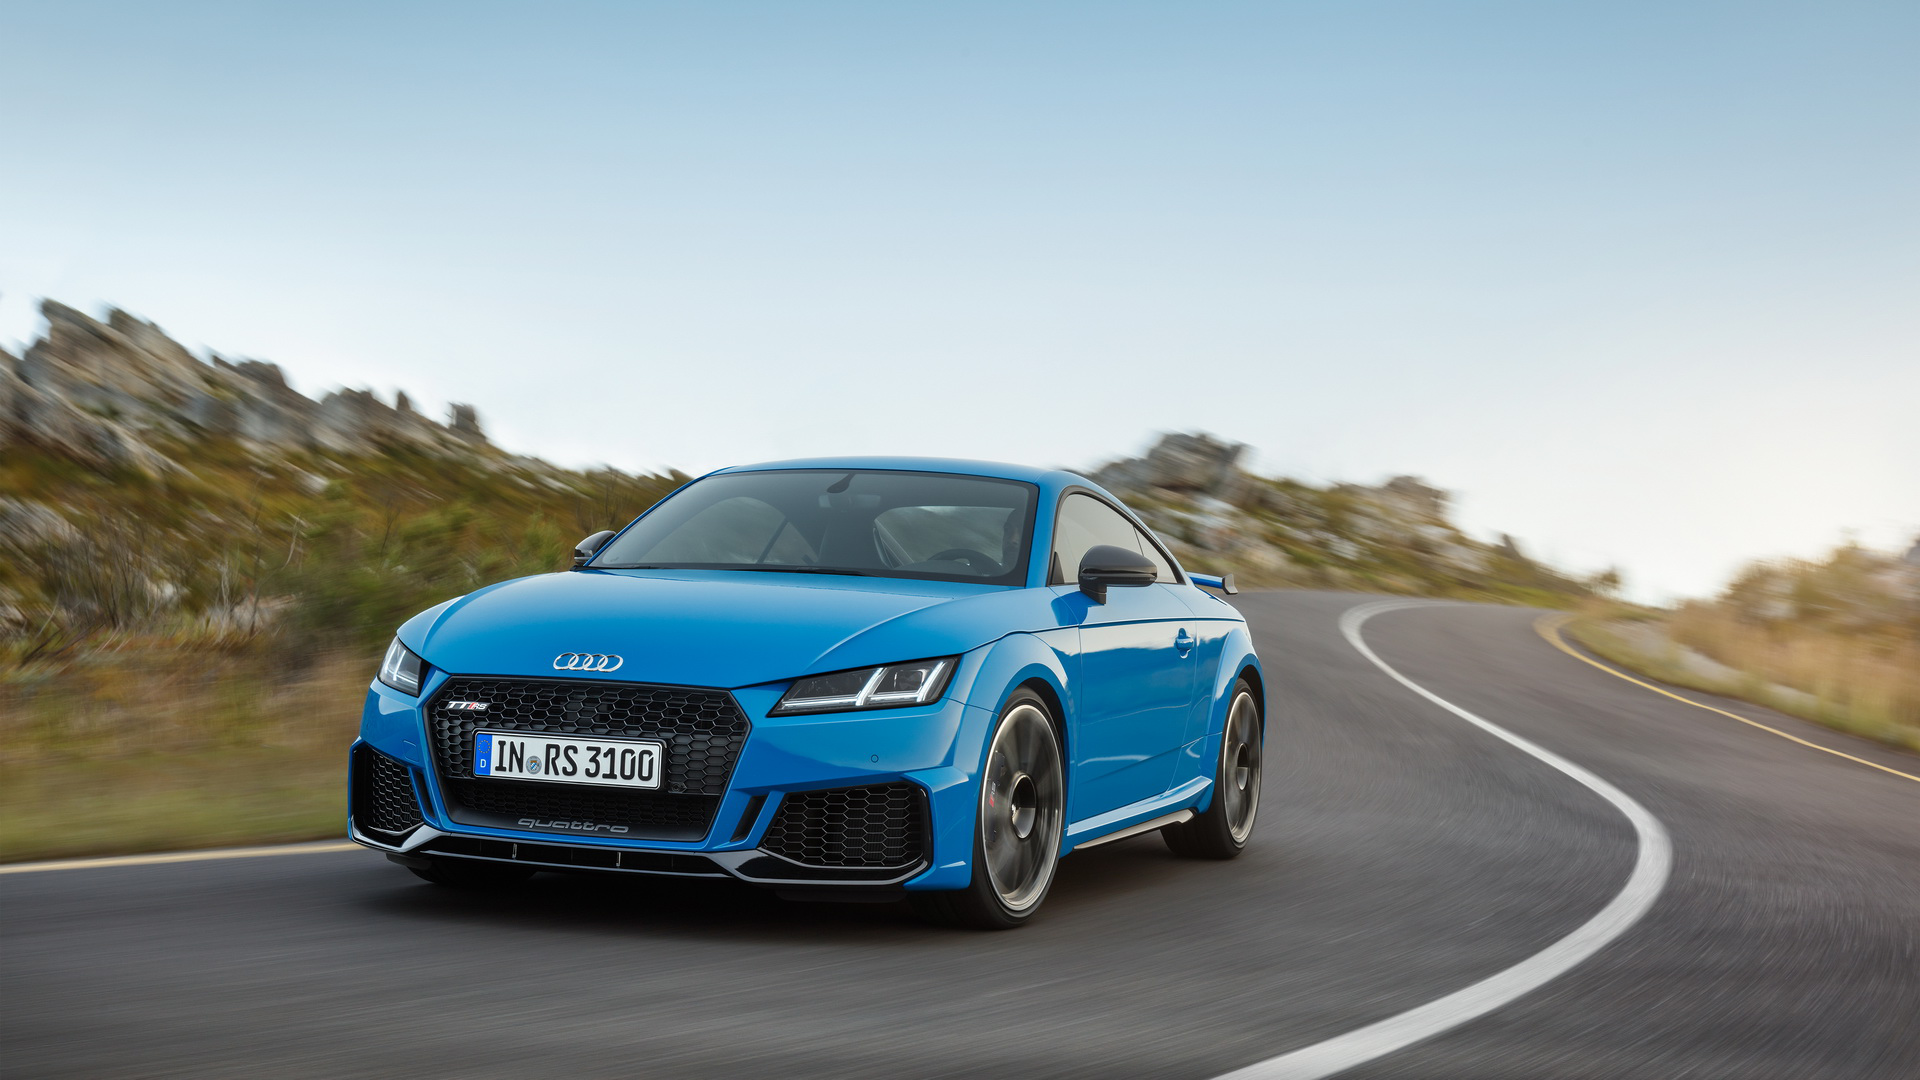 2019 Audi Tt Rs Facelift Arrives In The U S Priced From 67 895 Carmojo With A 0 60mph In 3 6 Seconds The Near 400hp Audi Tt Rs Is O Audi Tt Audi Coupe